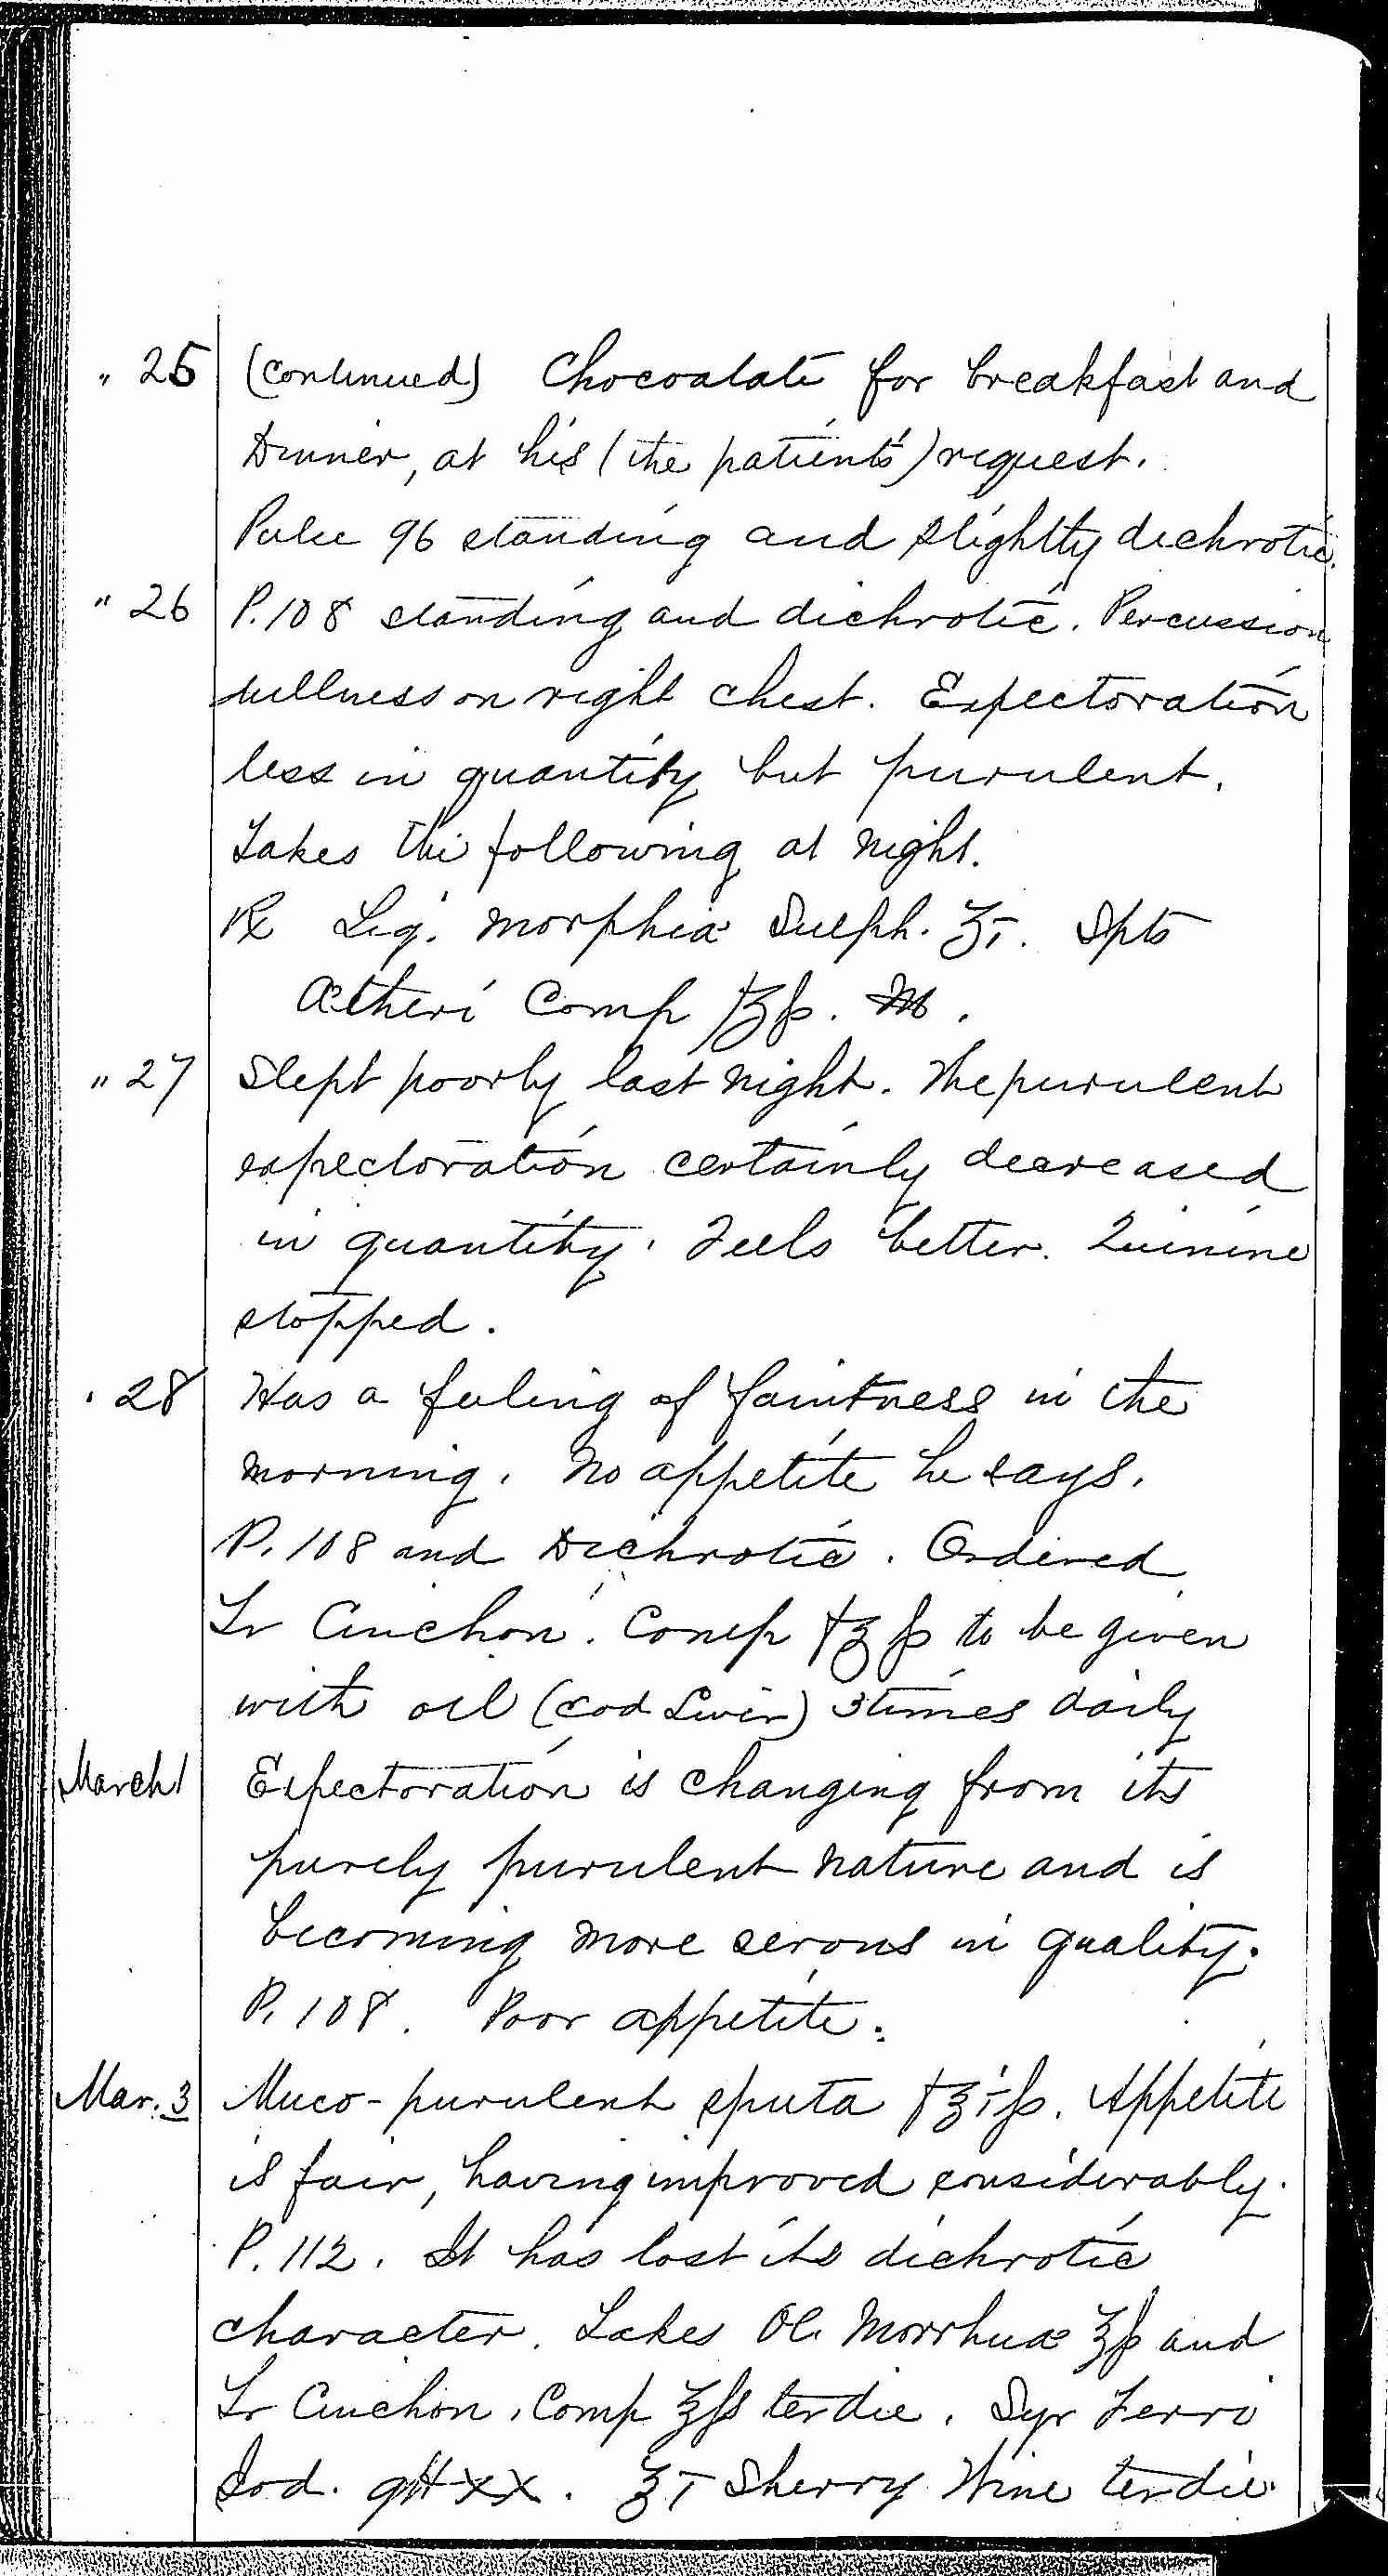 Entry for Peter C. Cheeks (page 8 of 16) in the log Hospital Tickets and Case Papers - Naval Hospital - Washington, D.C. - 1868-69